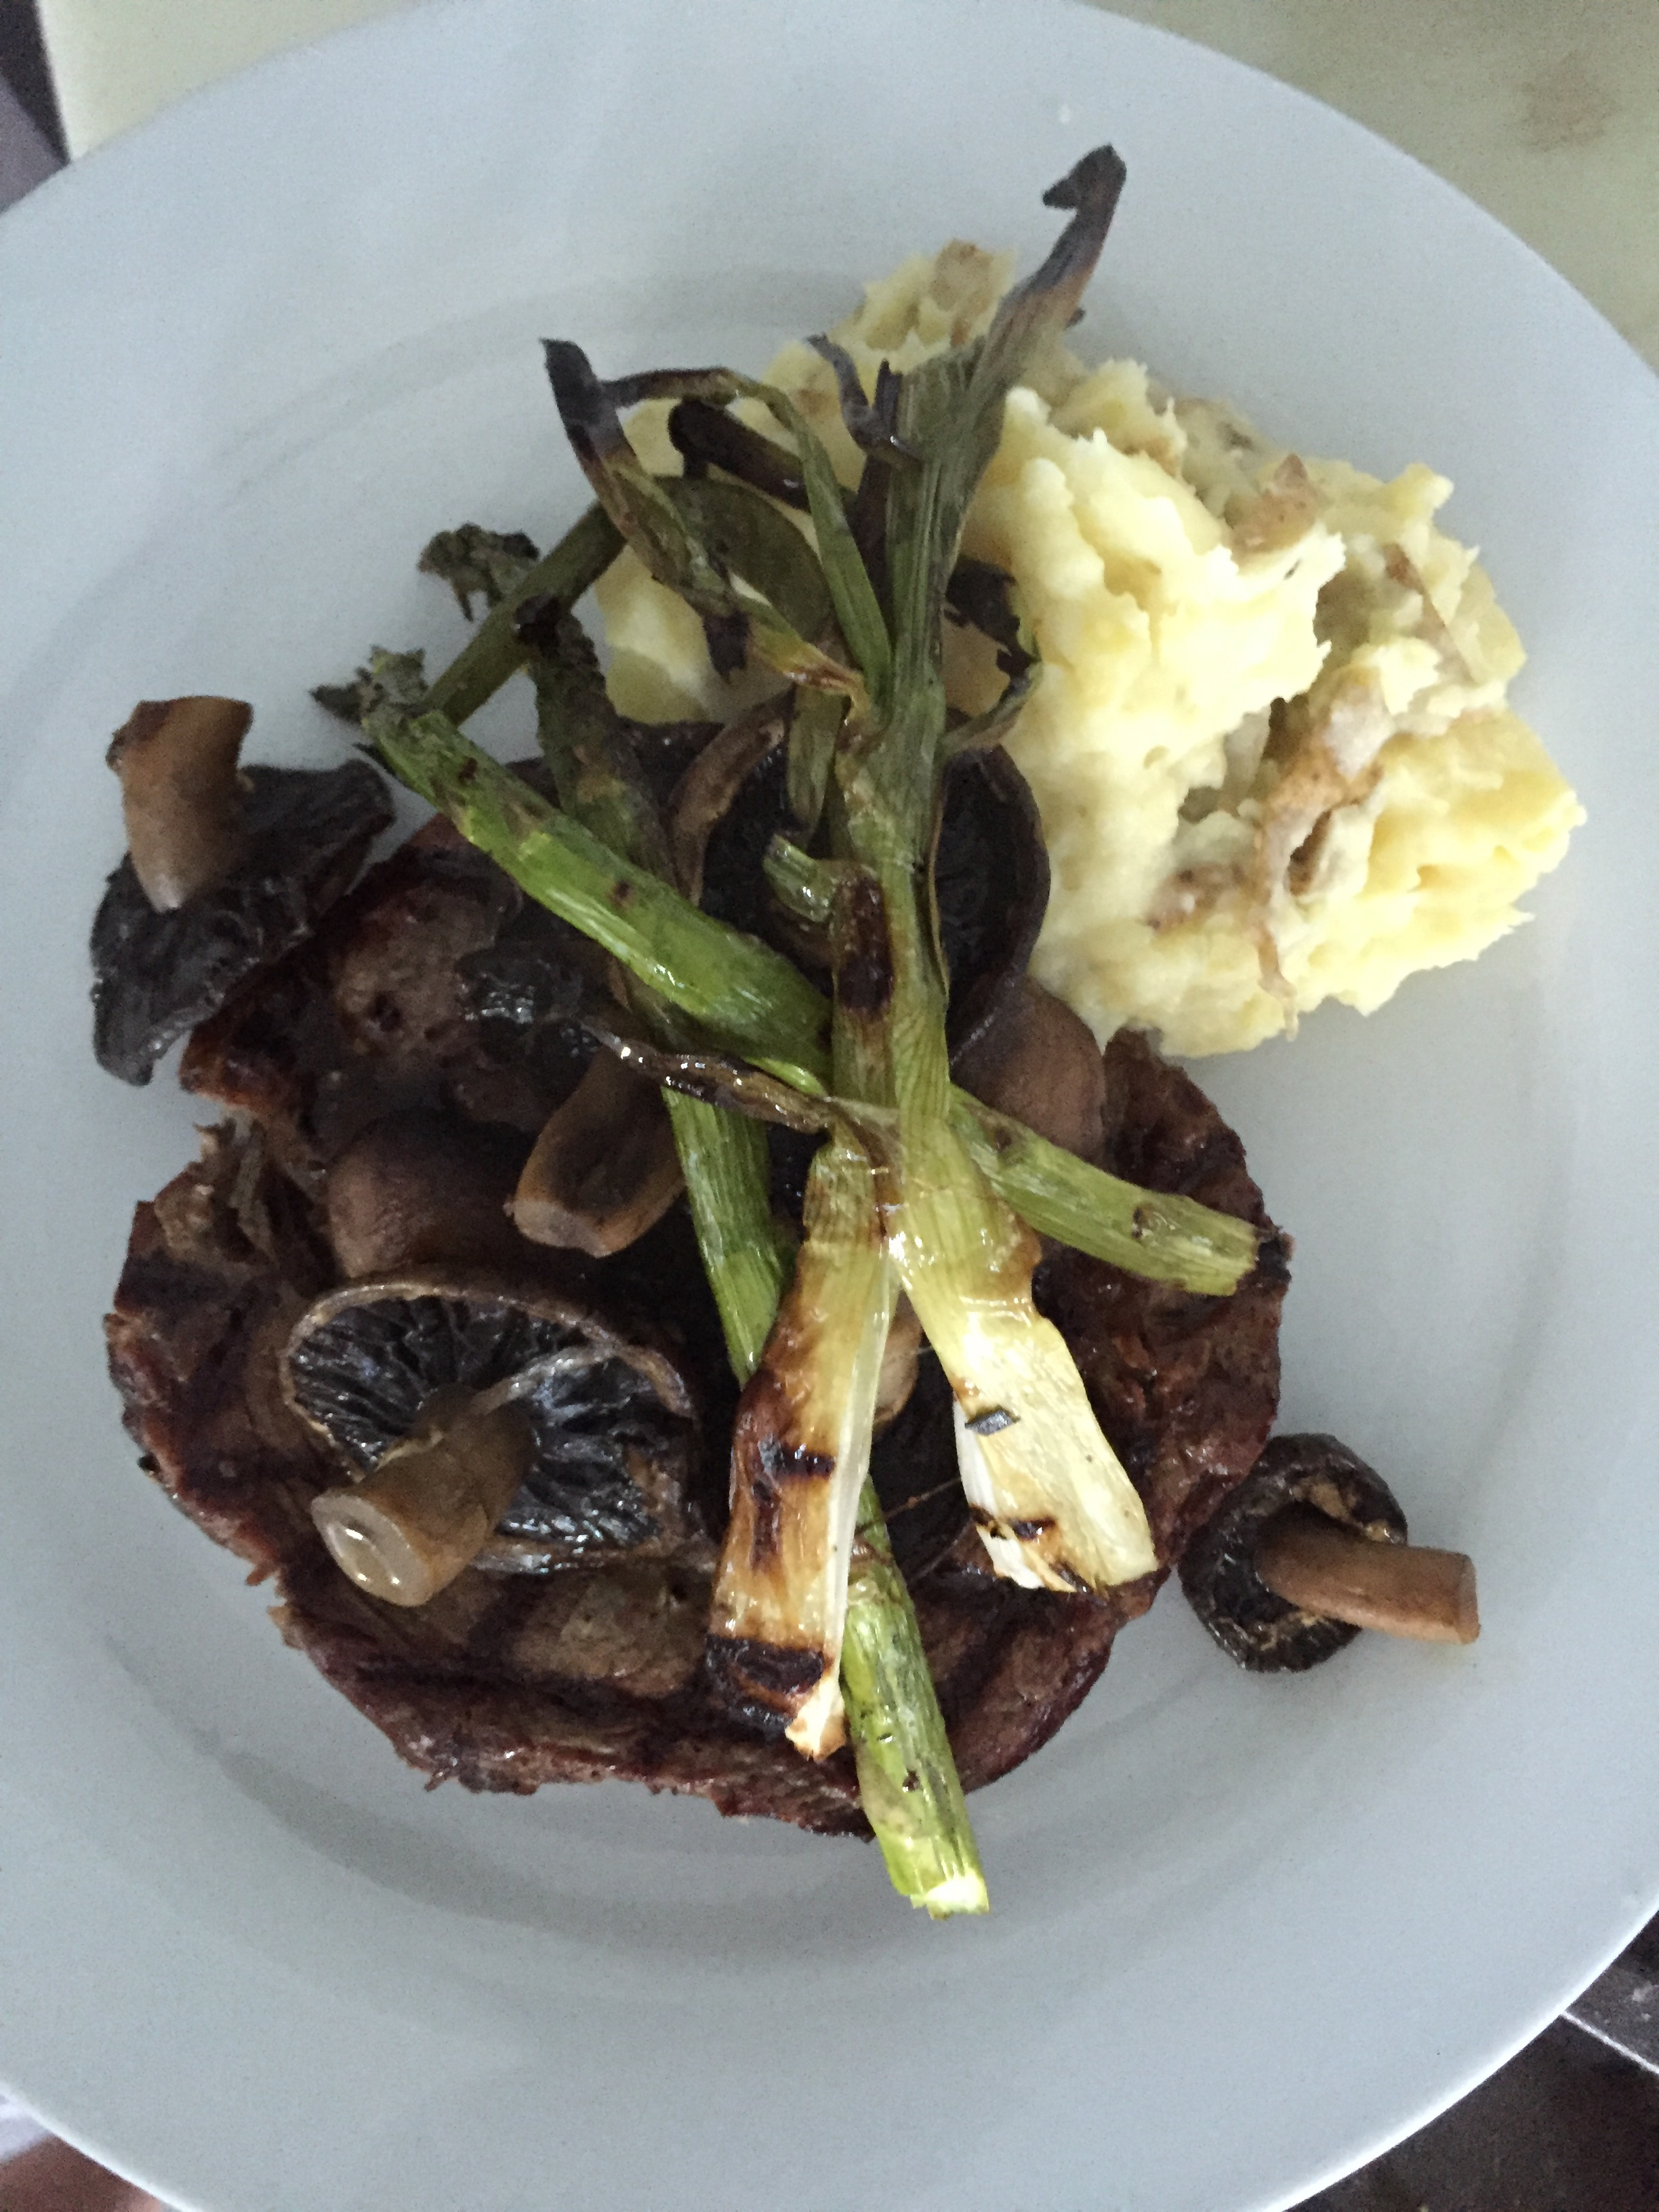 grilled steak, mushrooms and garden asparagus served with garlic mashed potatoes